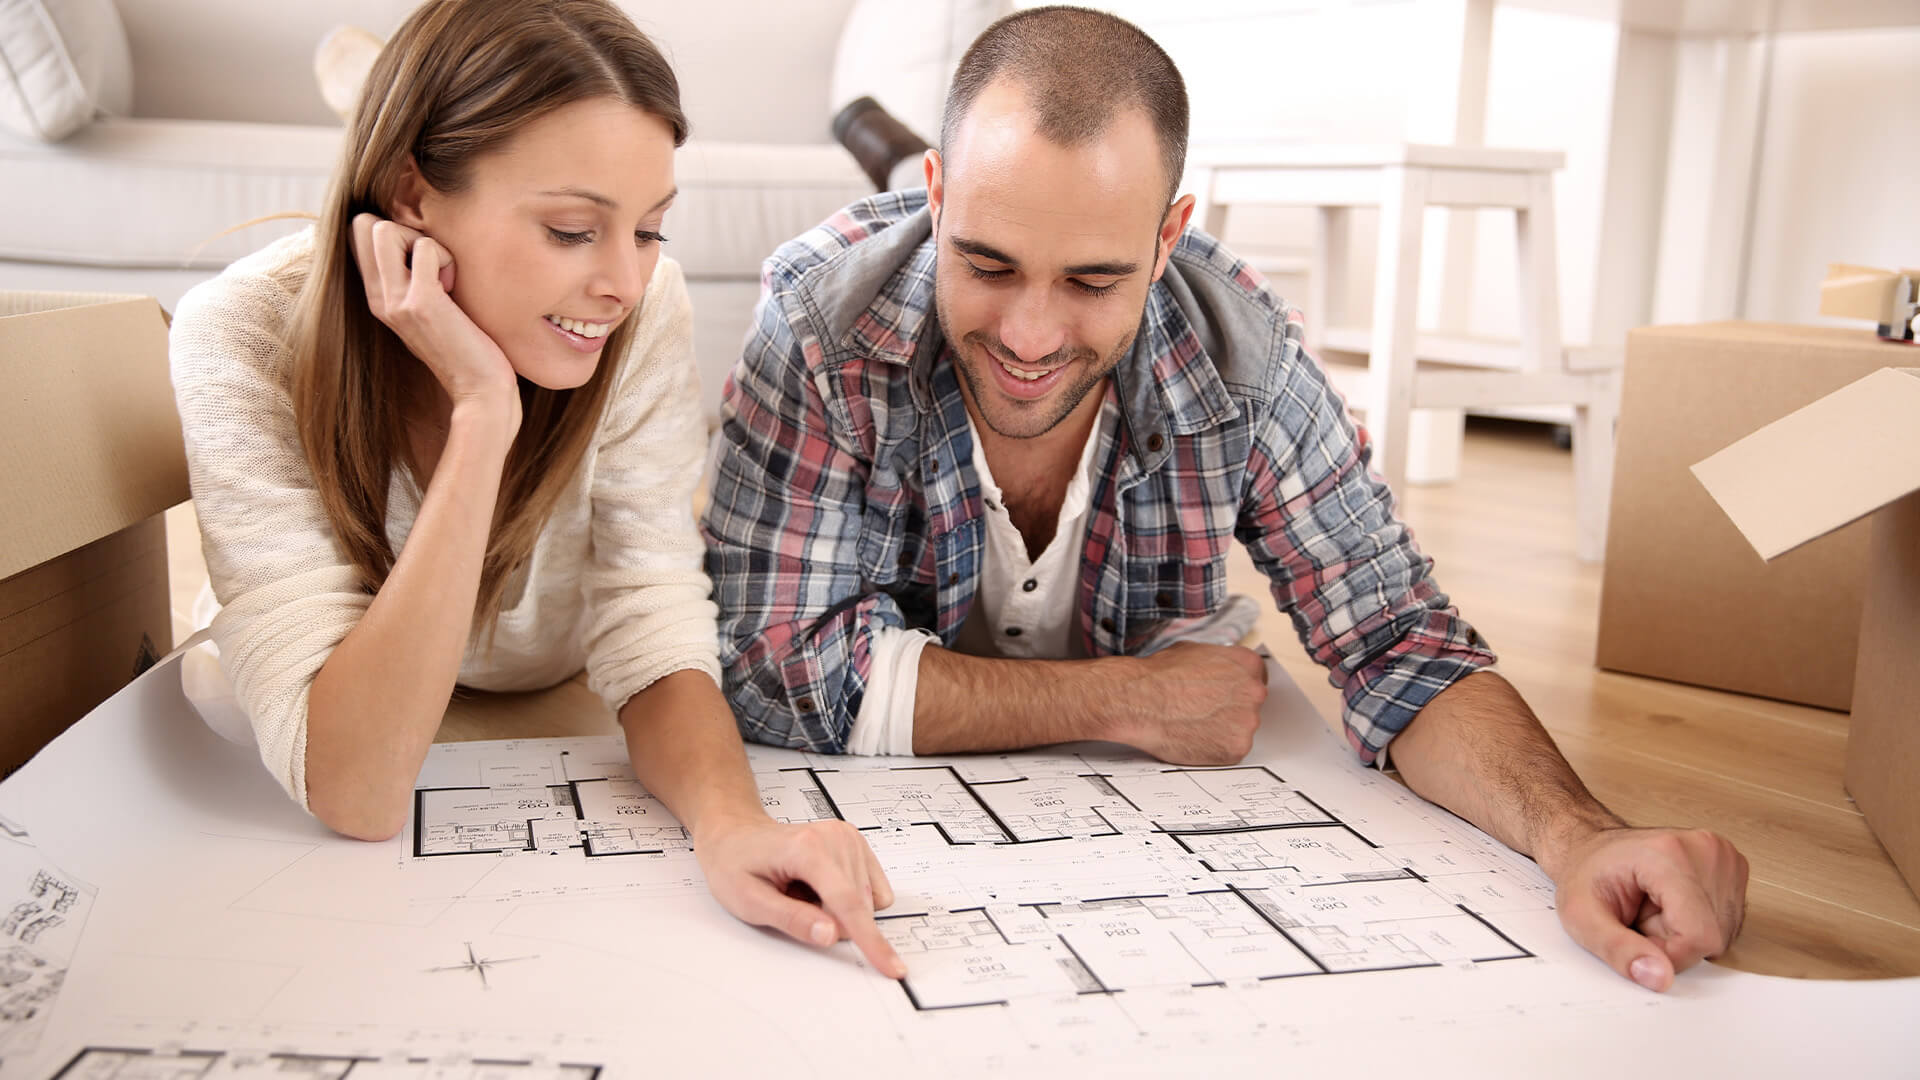 Couple lookng at floor plans and making decisions